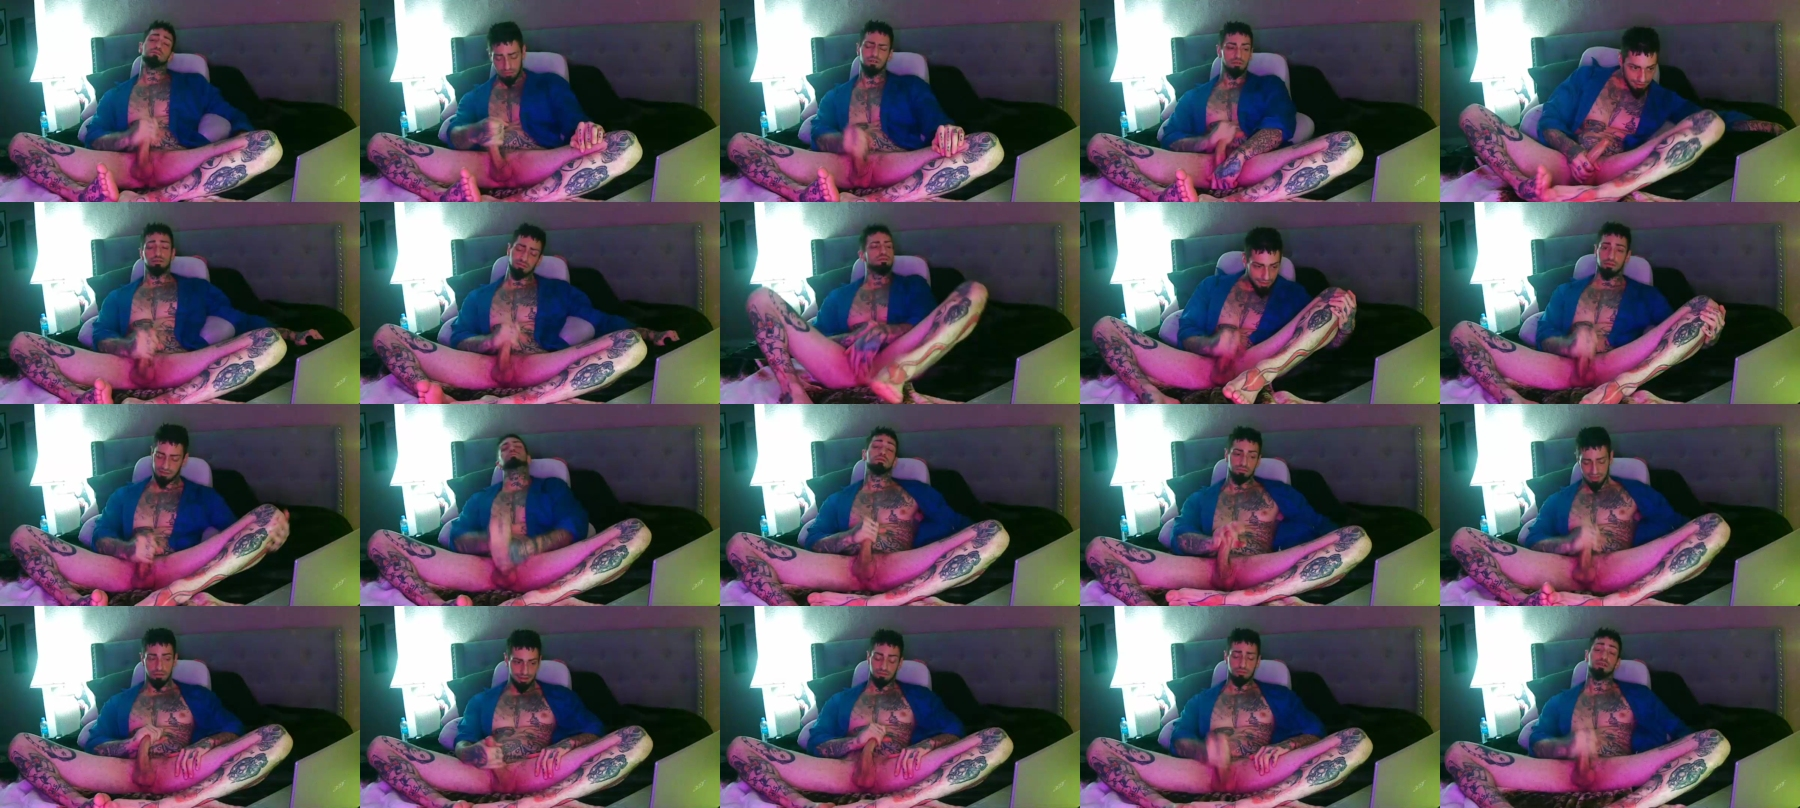 Beautevil32 Chaturbate 18-09-2021 video outfits